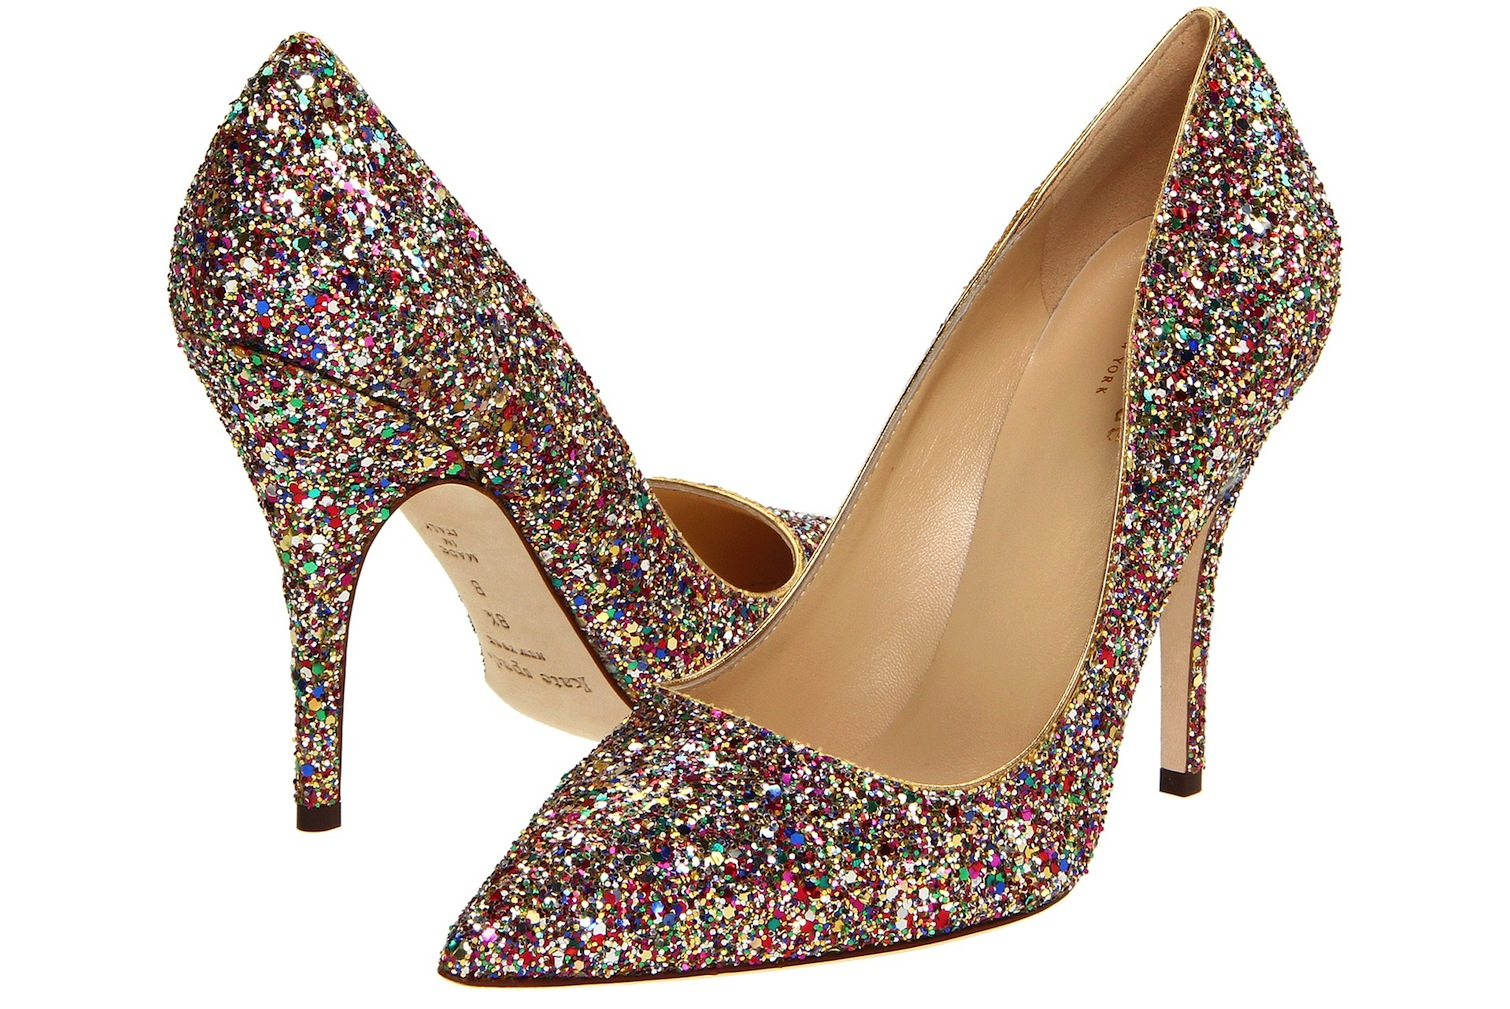 Wedding-accessories-inspiration-shimmery-bridal-heels-kate-spade-2.original